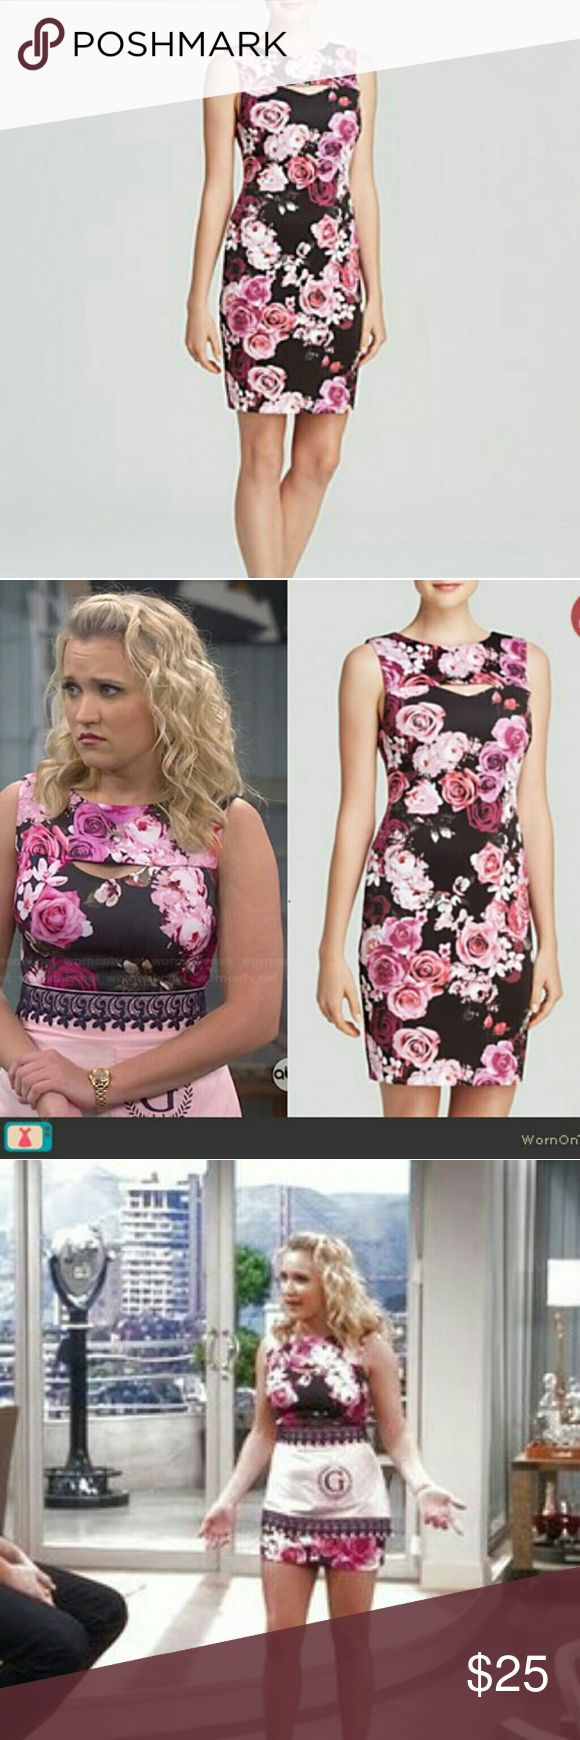 NWT Floral Bodycon dress (Aqua Bloomingdales) Aqua Cabbage Floral Scuba Body-con Dress worn by Emily Osment on Young & Hungry  Aqua is a brand exclusively sold at Bloomingdale's   Never worn, new with tags   Gorgeous and bold beautiful floral print. Neoprene type / scuba material  Back zipper Aqua Dresses Mini